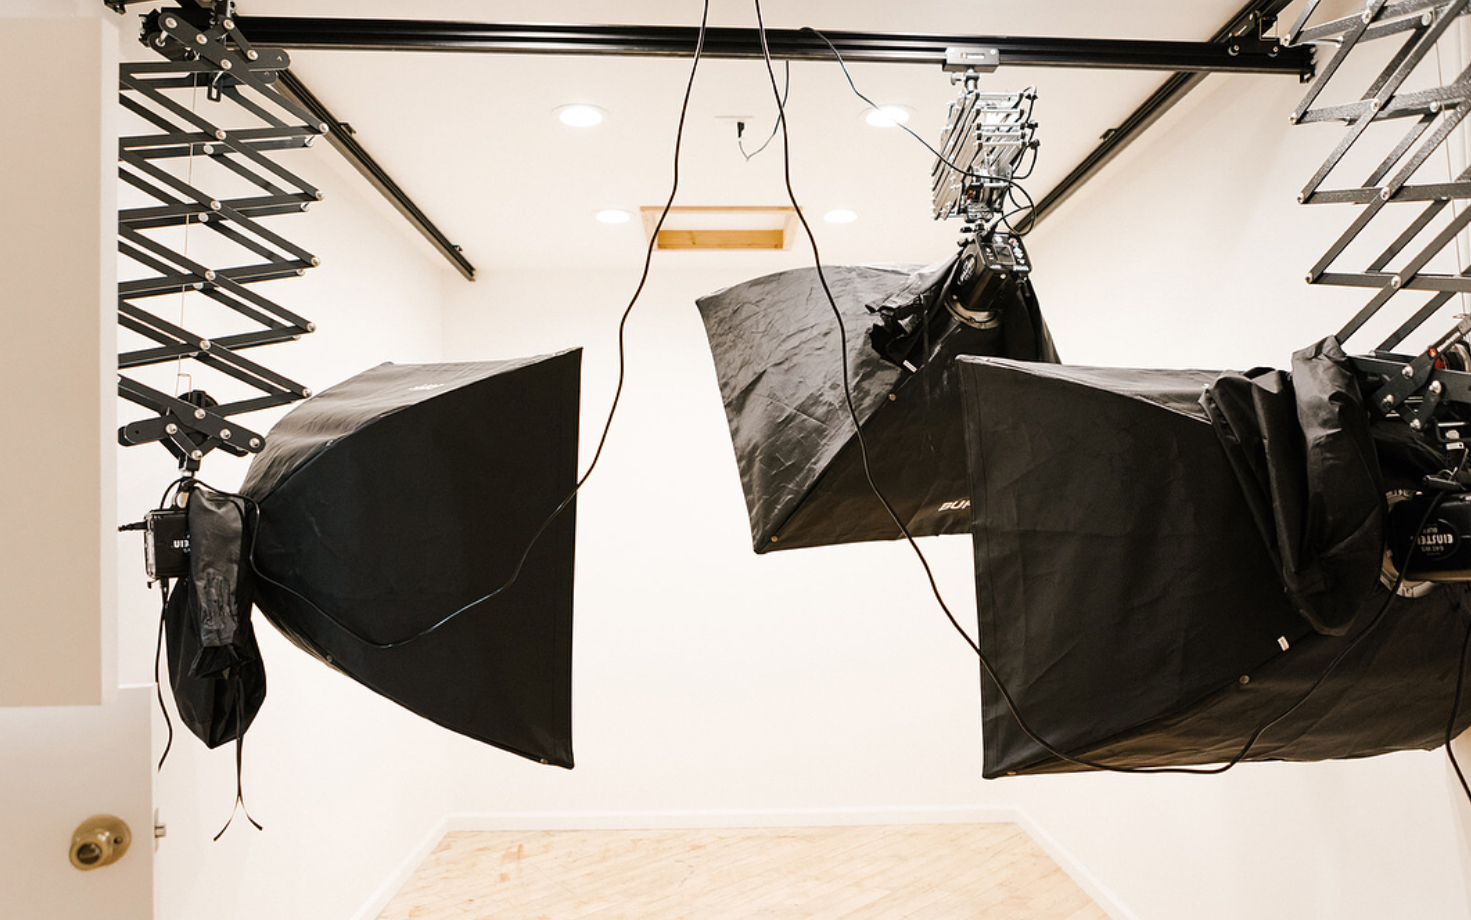 Flash Light Studio: Enclosed white space complete with lighting and photographic equipment. Get creative with birds-eye photography from the ceiling entrance. The perfect quarters for model shots, product lay downs, or anything else you might dream up.